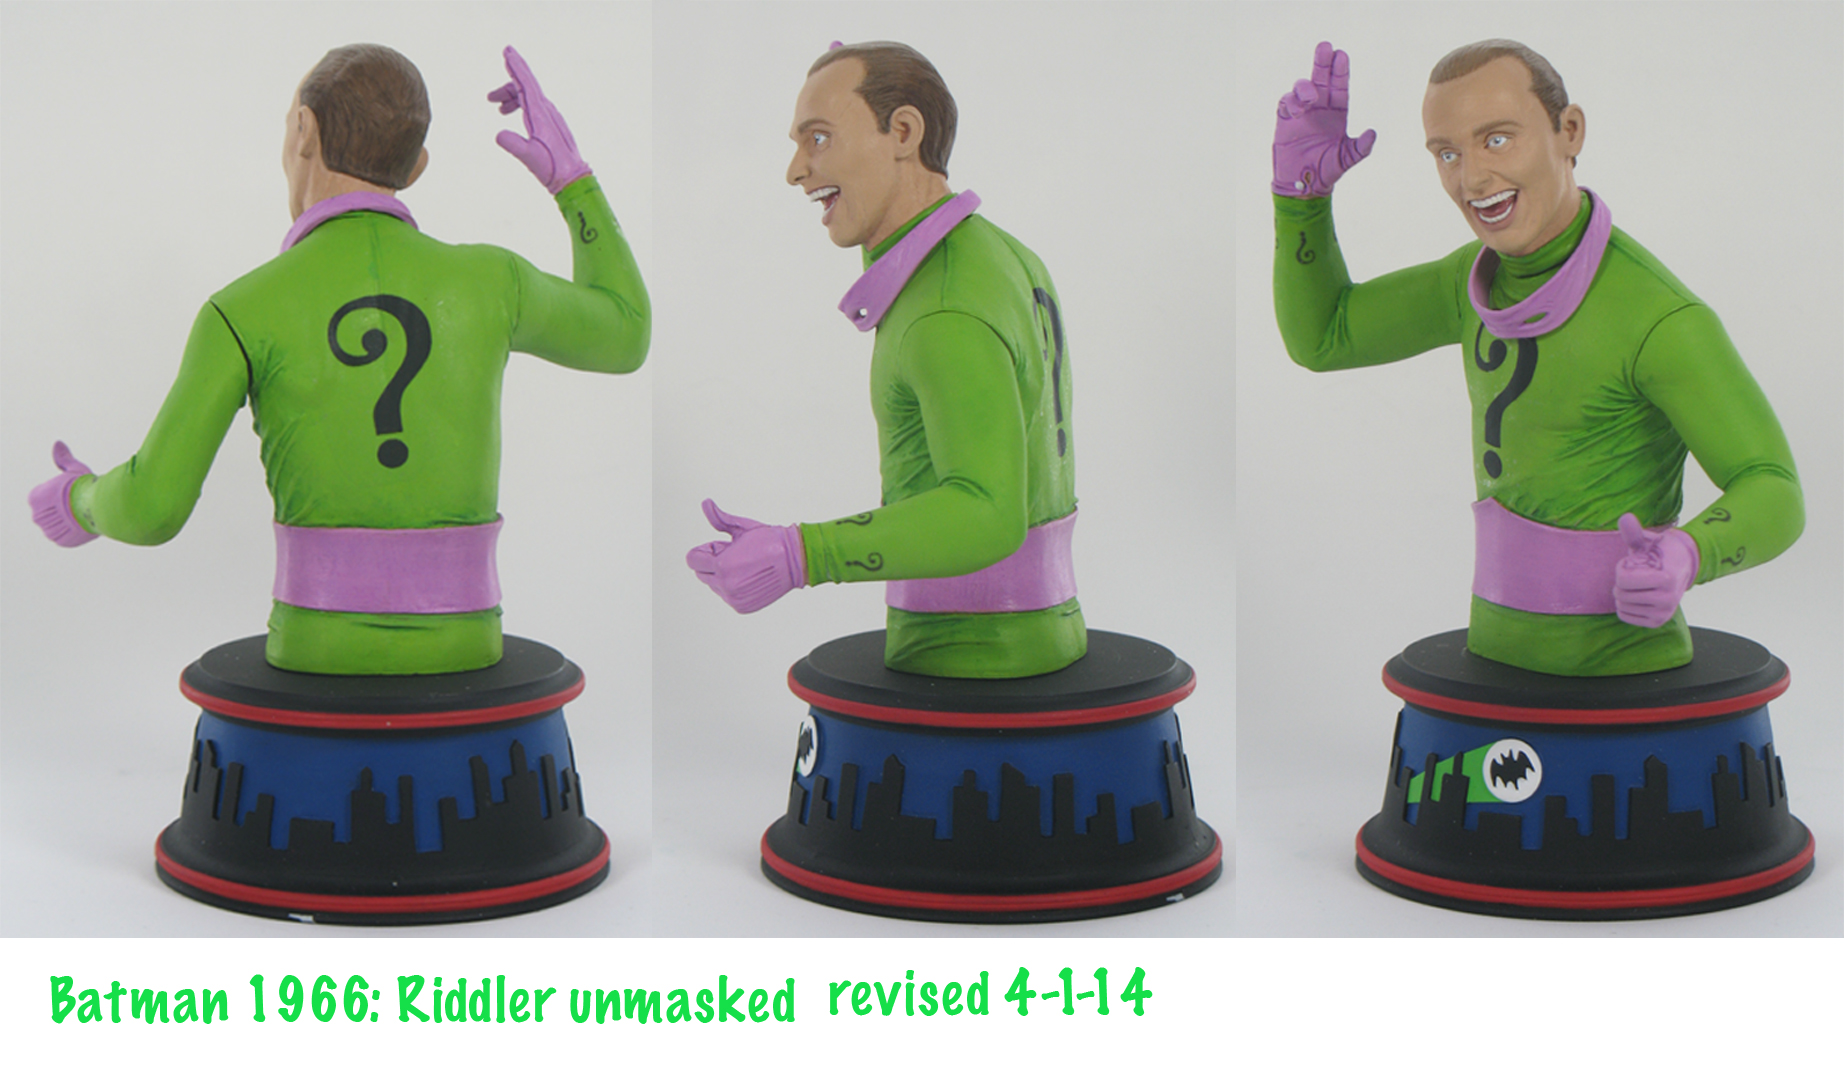 BM66-Riddler-paint-revised-4-1-14b